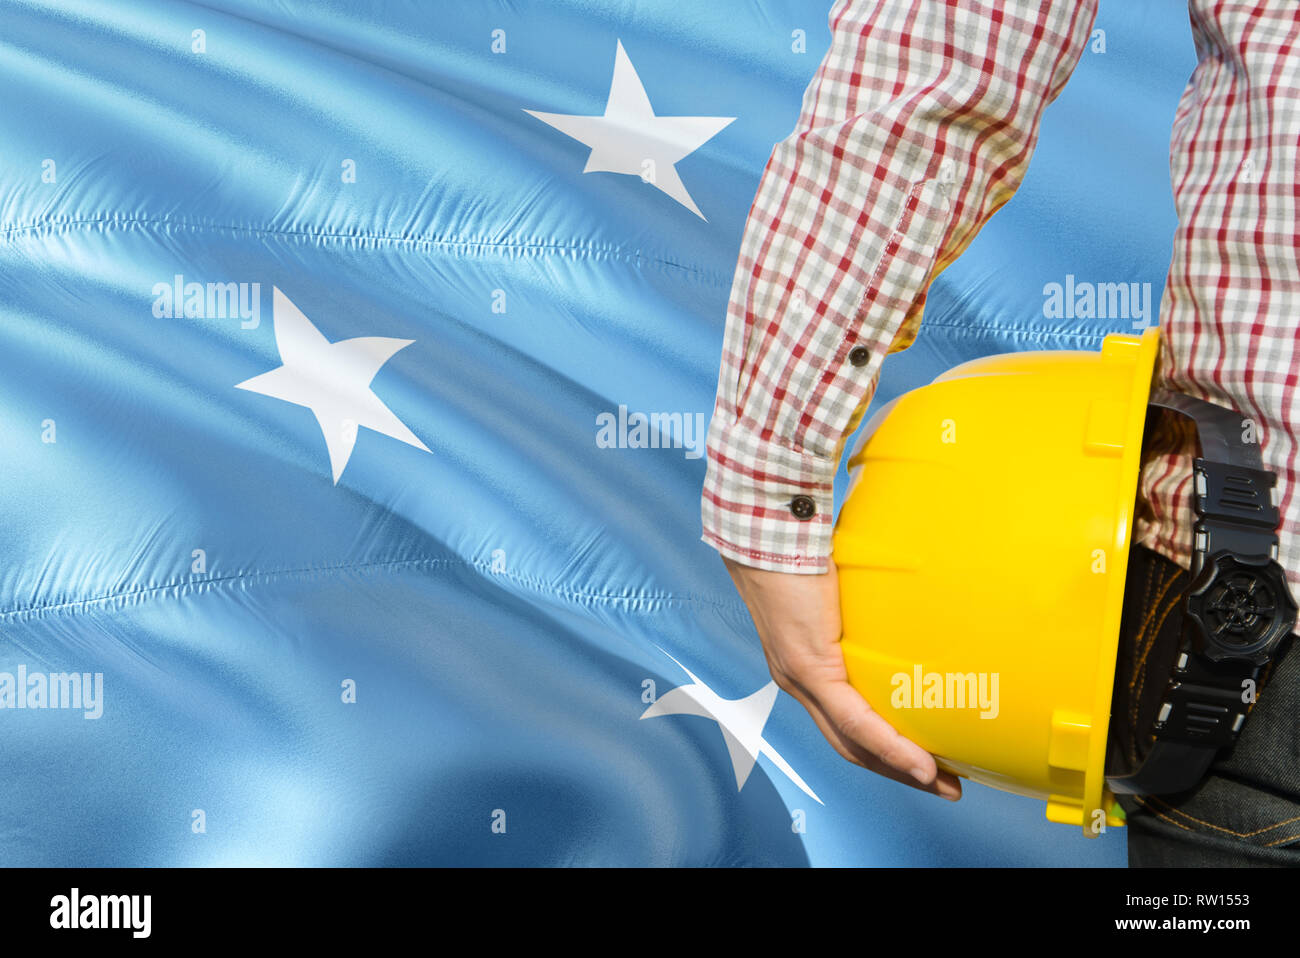 Micronesian Engineer is holding yellow safety helmet with waving Micronesia flag background. Construction and building concept. - Stock Image